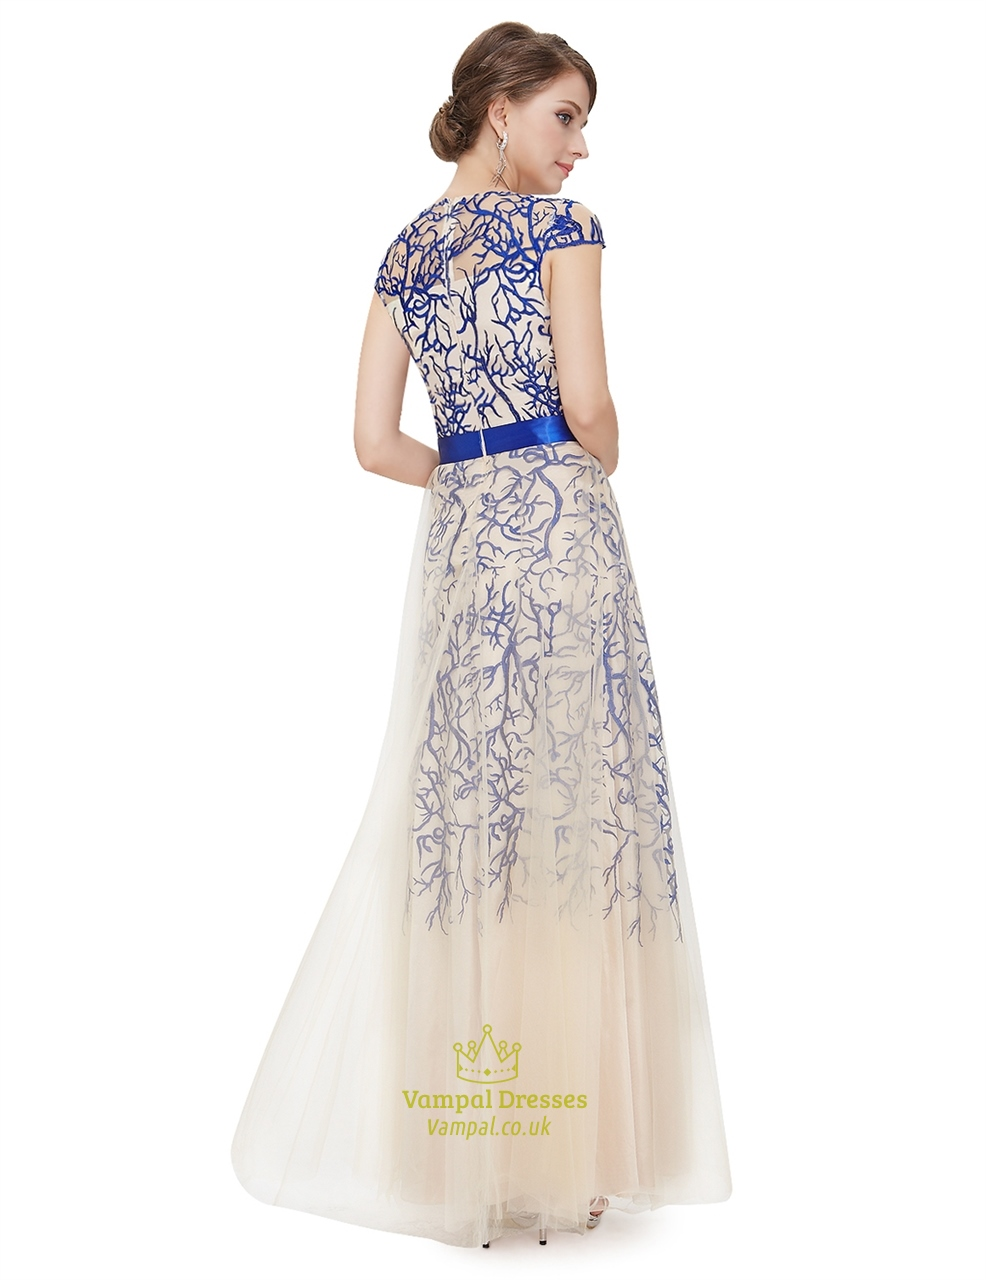 Champagne Cap Sleeves Tulle Prom Dress With Embroidered Flowers